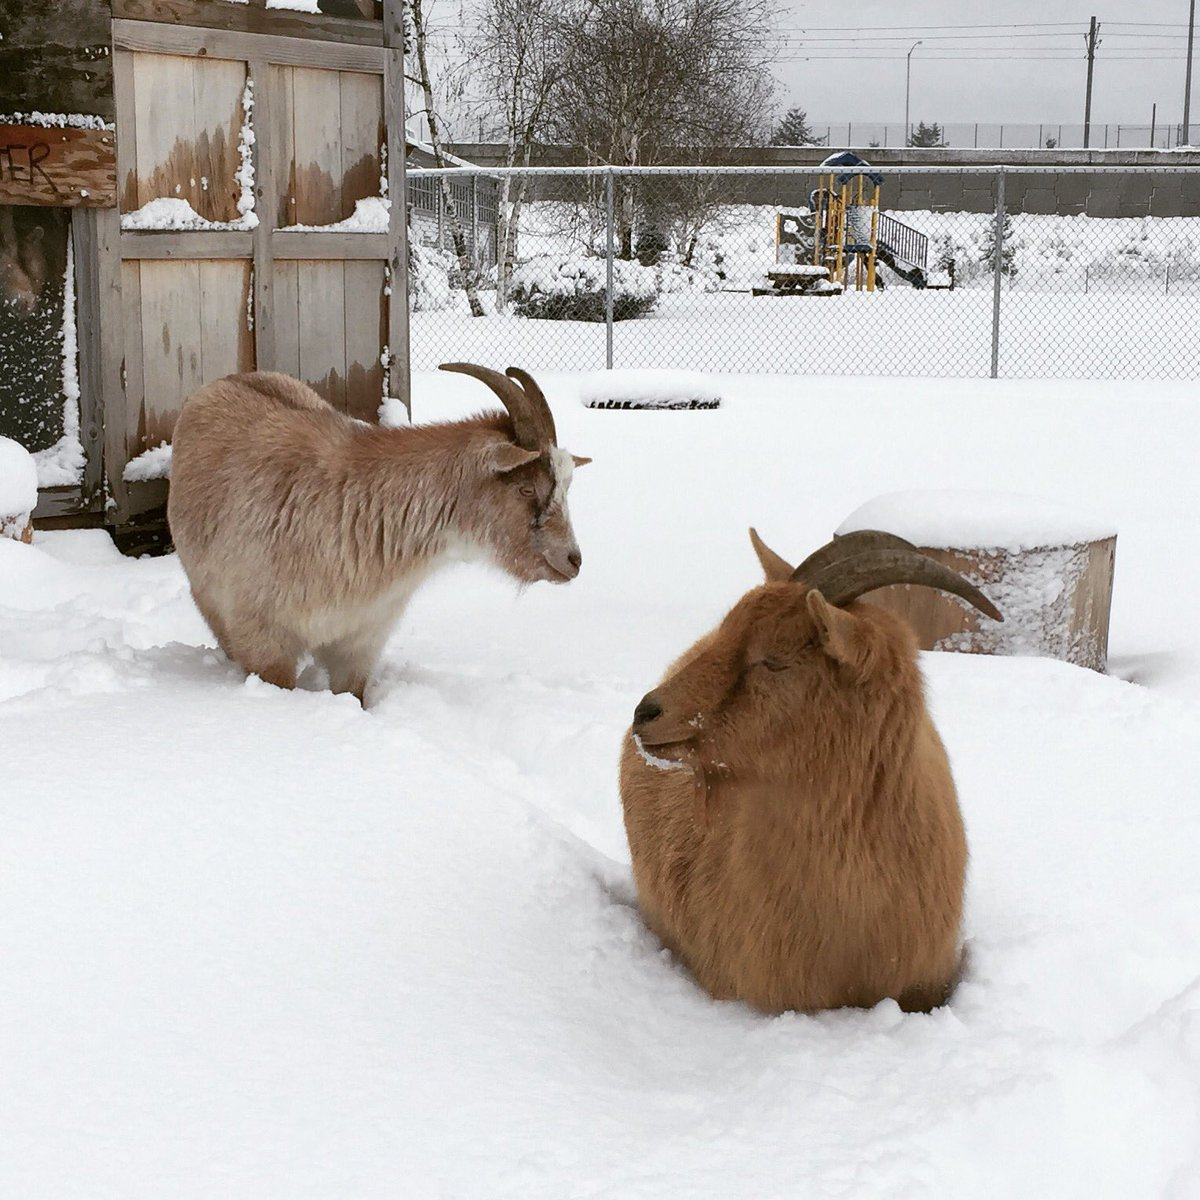 Alternative snow depth measurement: one Bambi leg high. #belmontgoats #goats #pdxtst #pdxsnow @NWSPortland<br>http://pic.twitter.com/tf1FXihNIG &ndash; à The Belmont Goats